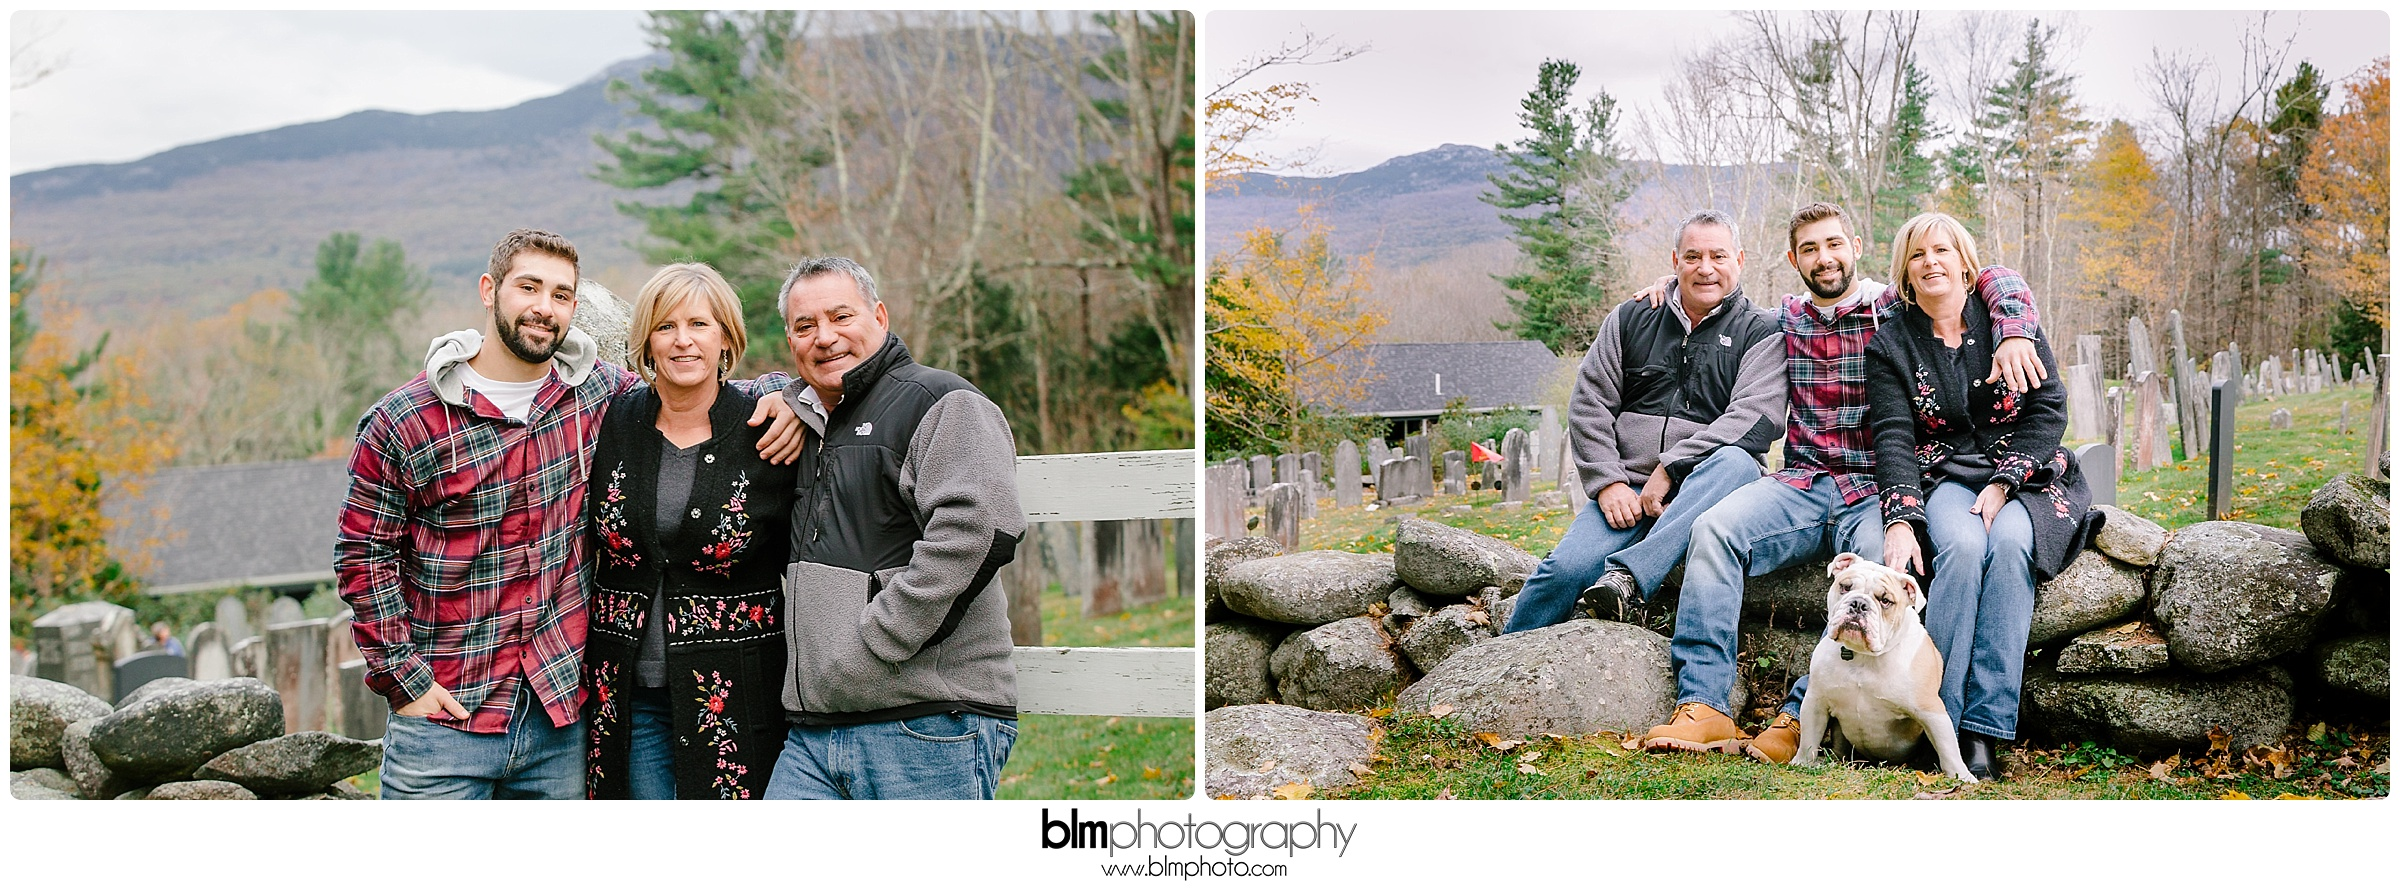 2019 Senior,BLM,BLM Senior,Brianna Morrissey,Brie Morrissey,Class of 2019,Jaffrey,Jaffrey Senior,Josh-Arruda_Senior,Lawrence Academy,NH Portrait Photographer,Oct,October,Photo,Photographer,Photography,Senior Photographer,Senior Portrait,www.blmphoto.com/contact,©BLM Photography 2018,